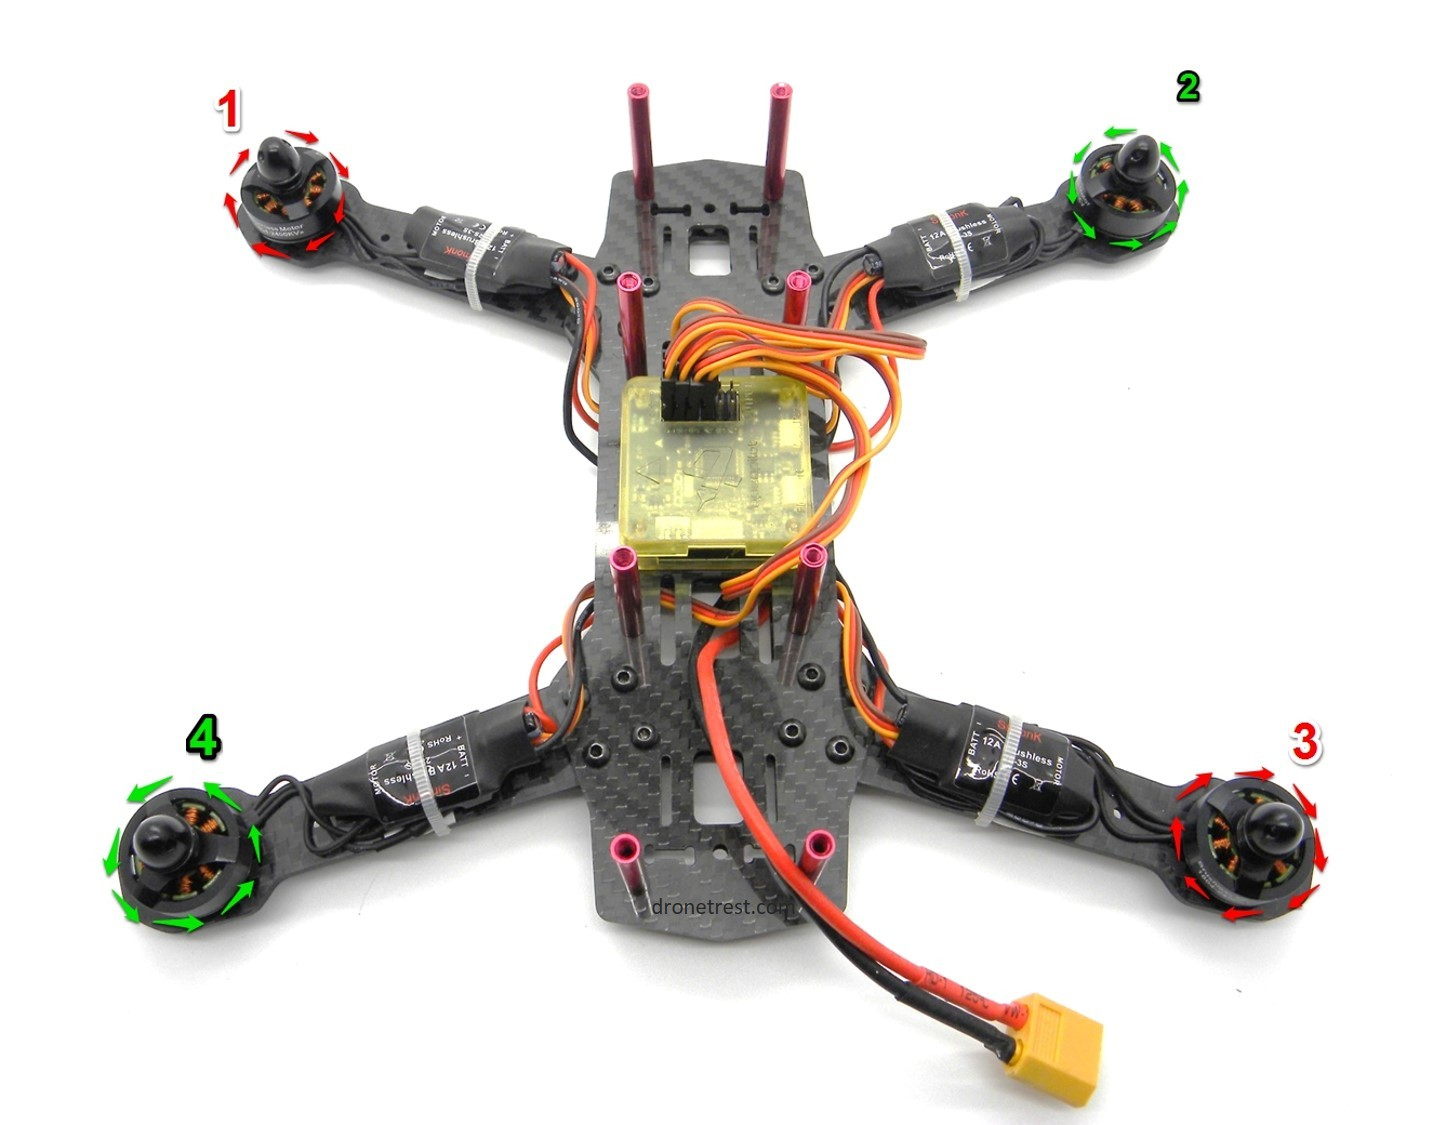 Qav zmr 250 assembly build guide guides dronetrest check point asfbconference2016 Images